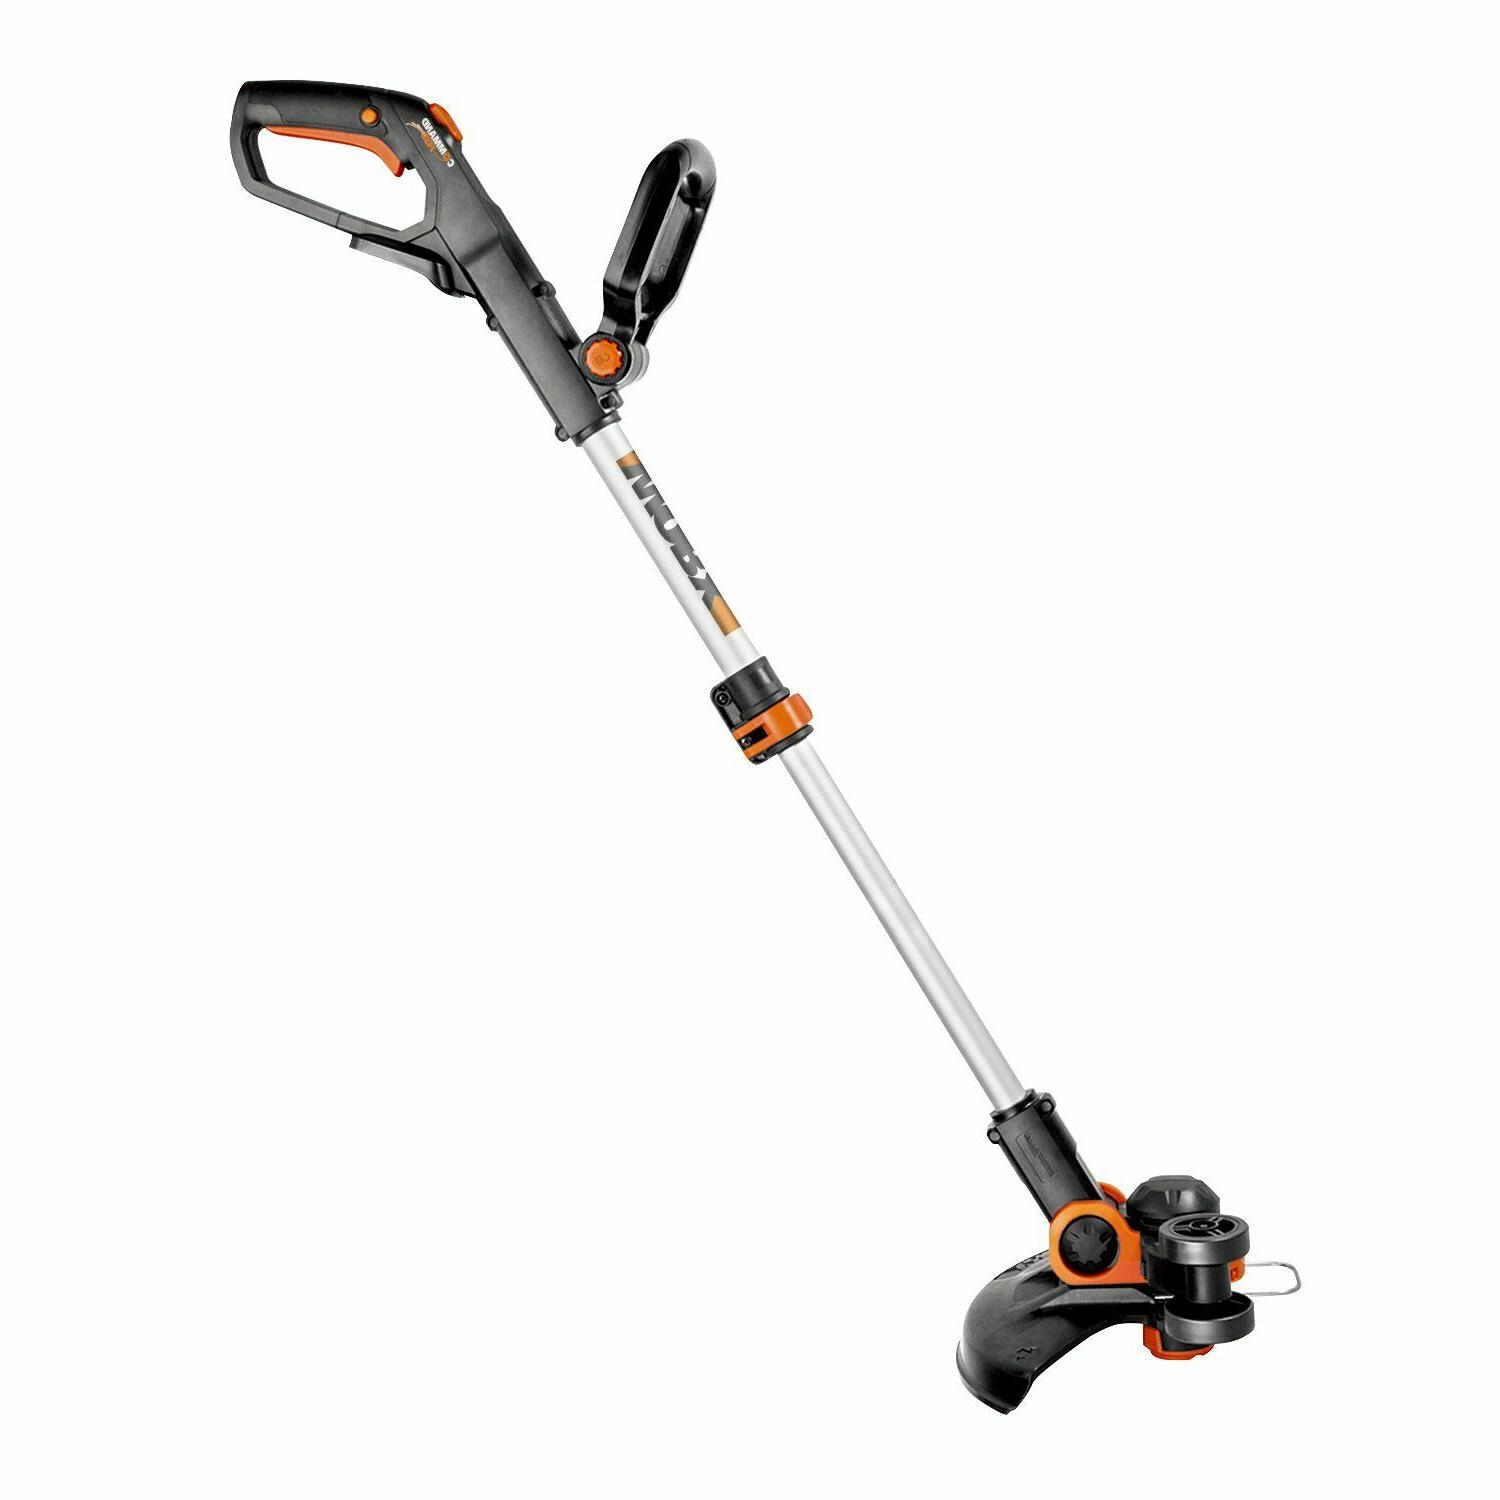 20V Electric Cordless String Trimmer Weed Eater Lawn